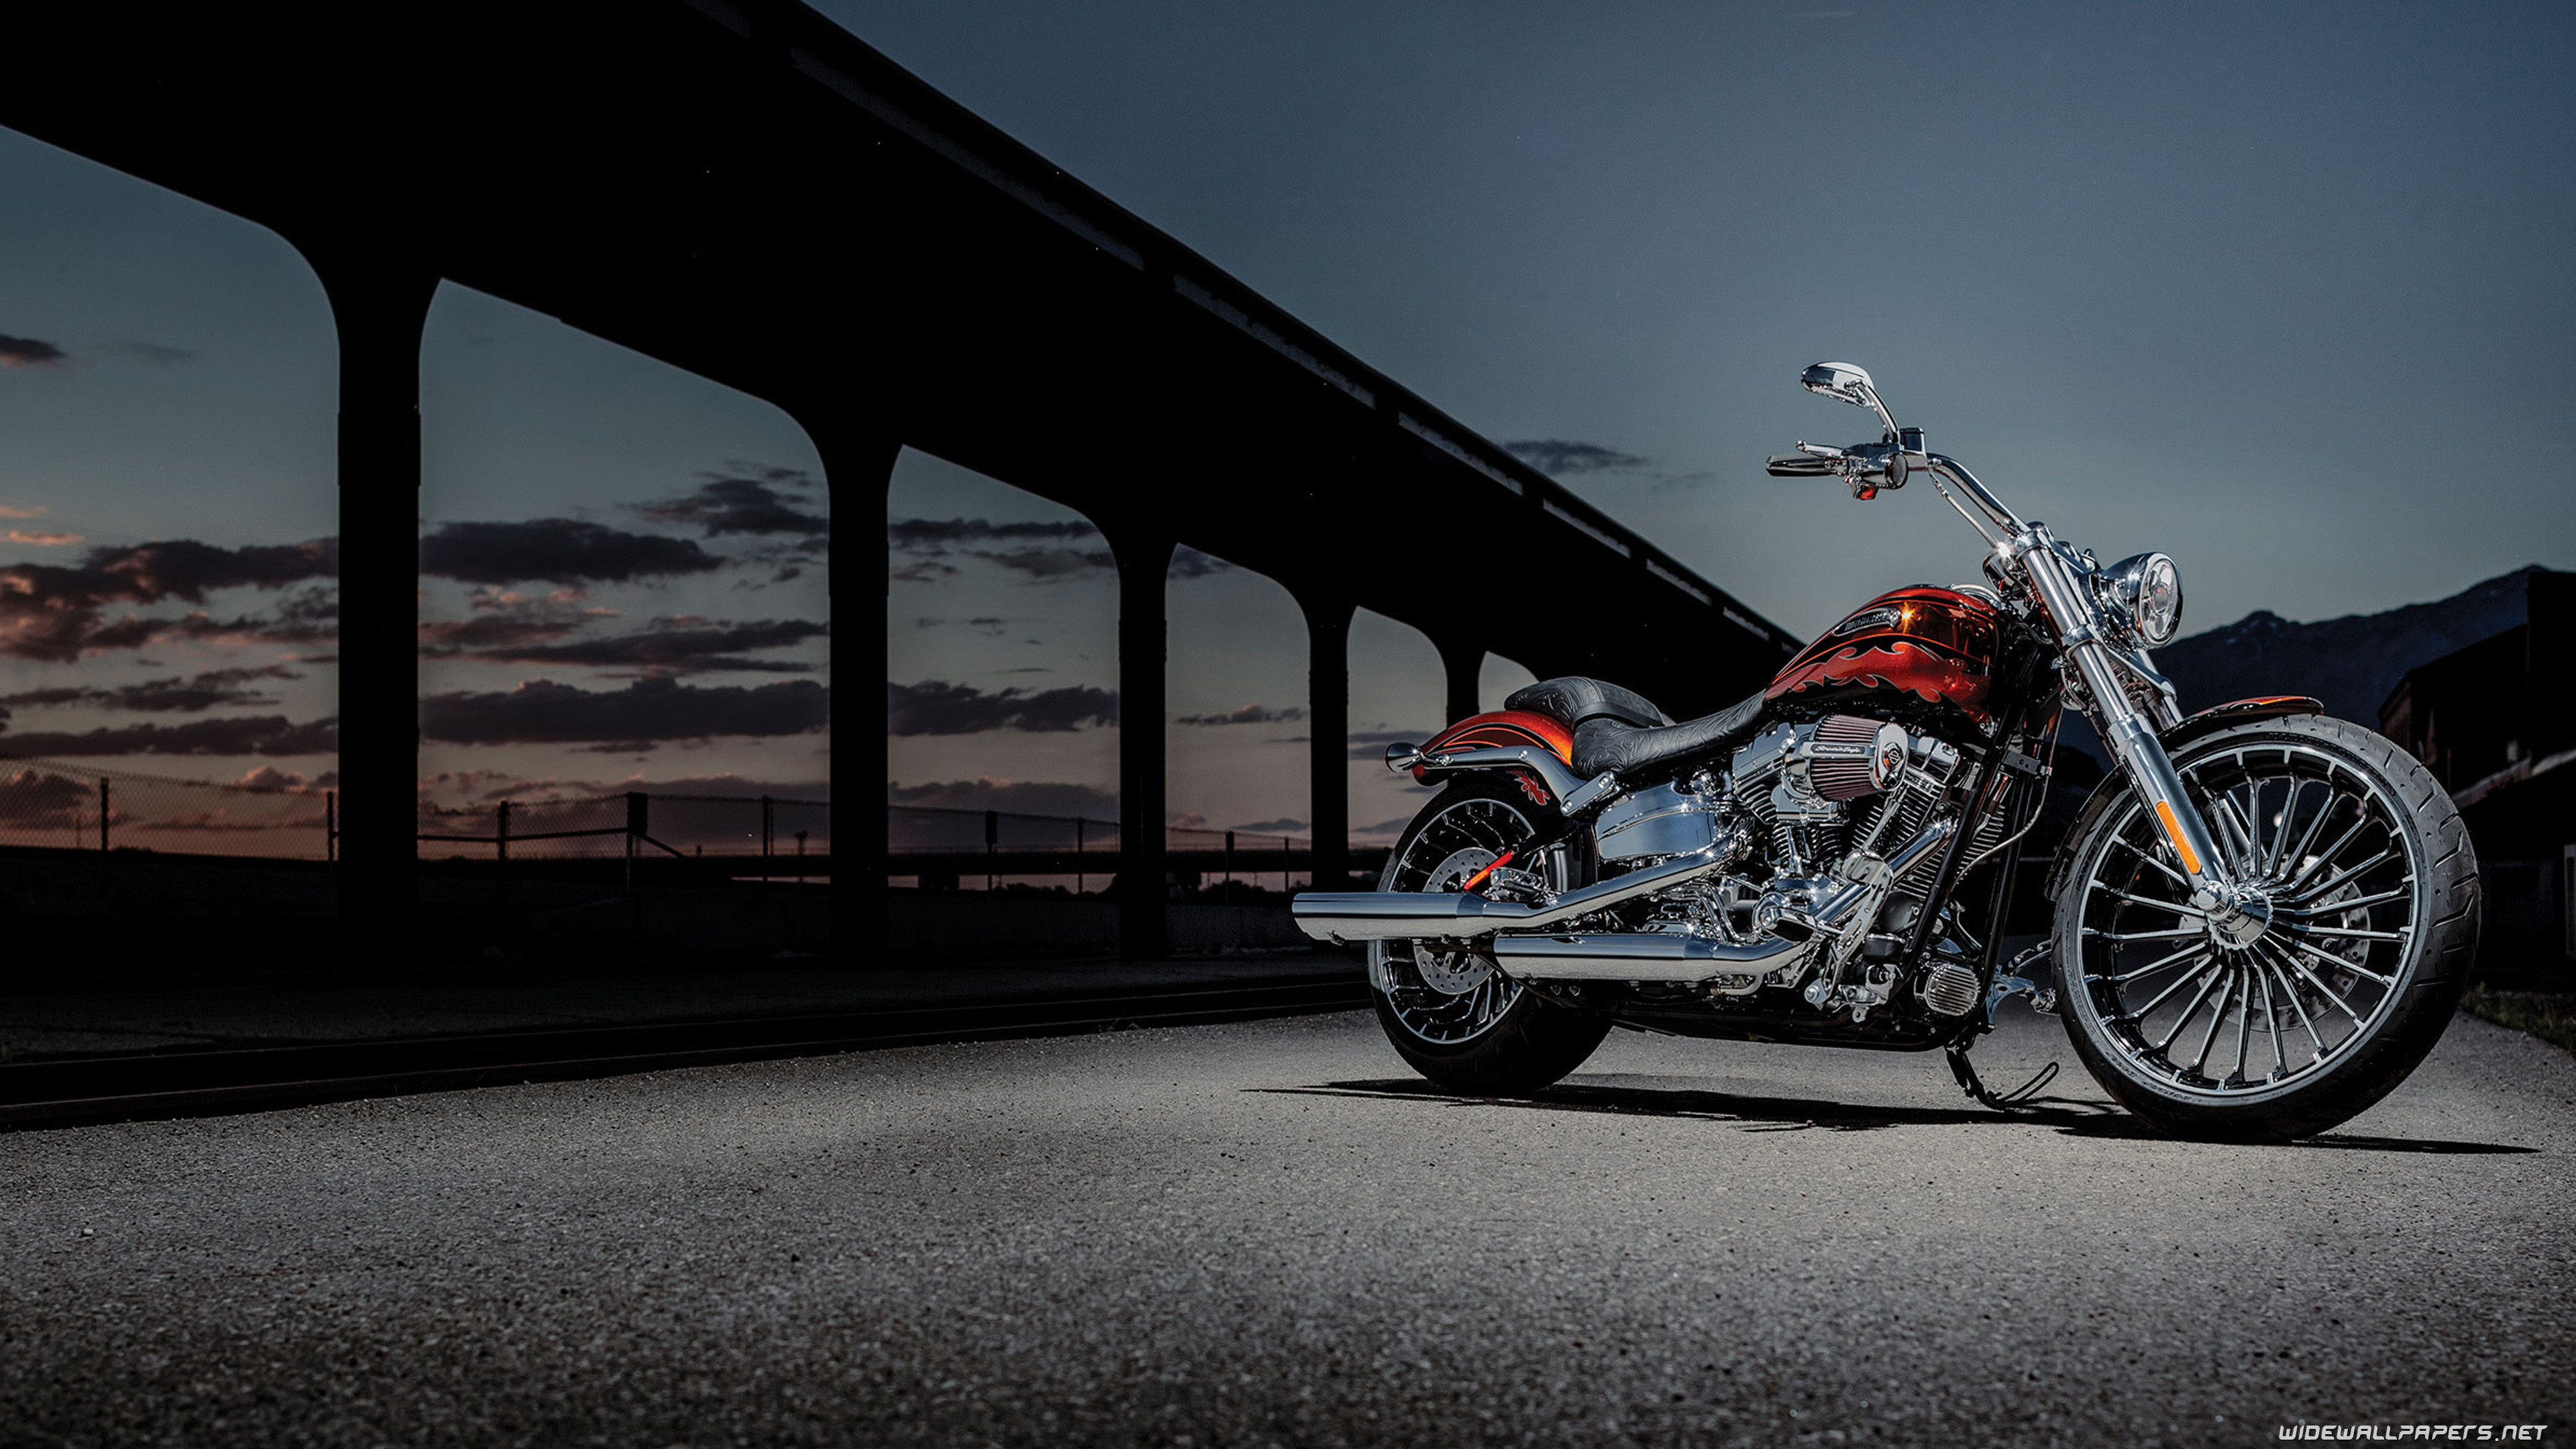 3840x2160 Harley Davidson Wallpaper Desktop